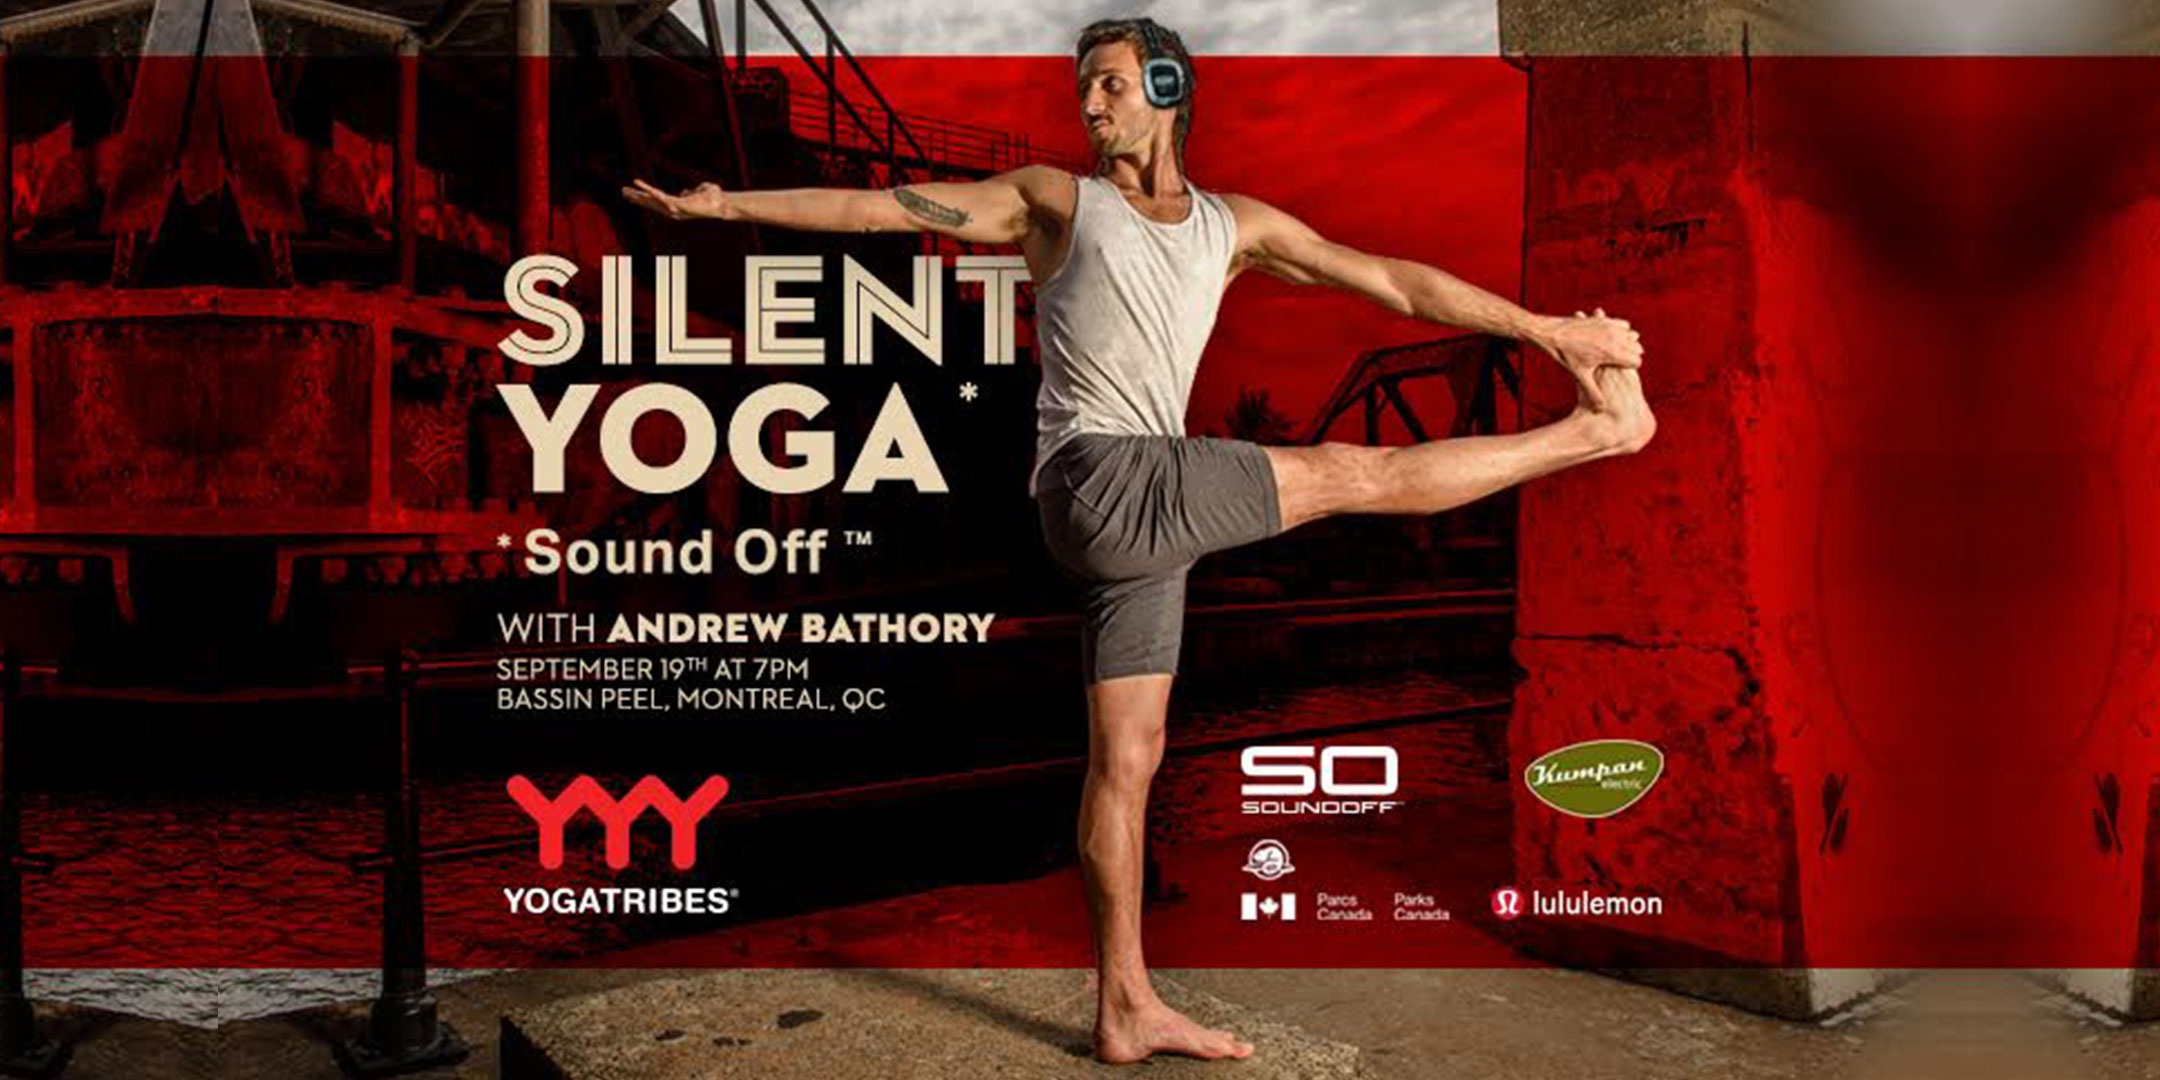 YogaTribes x Sound Off™ : A Silent Yoga Experience